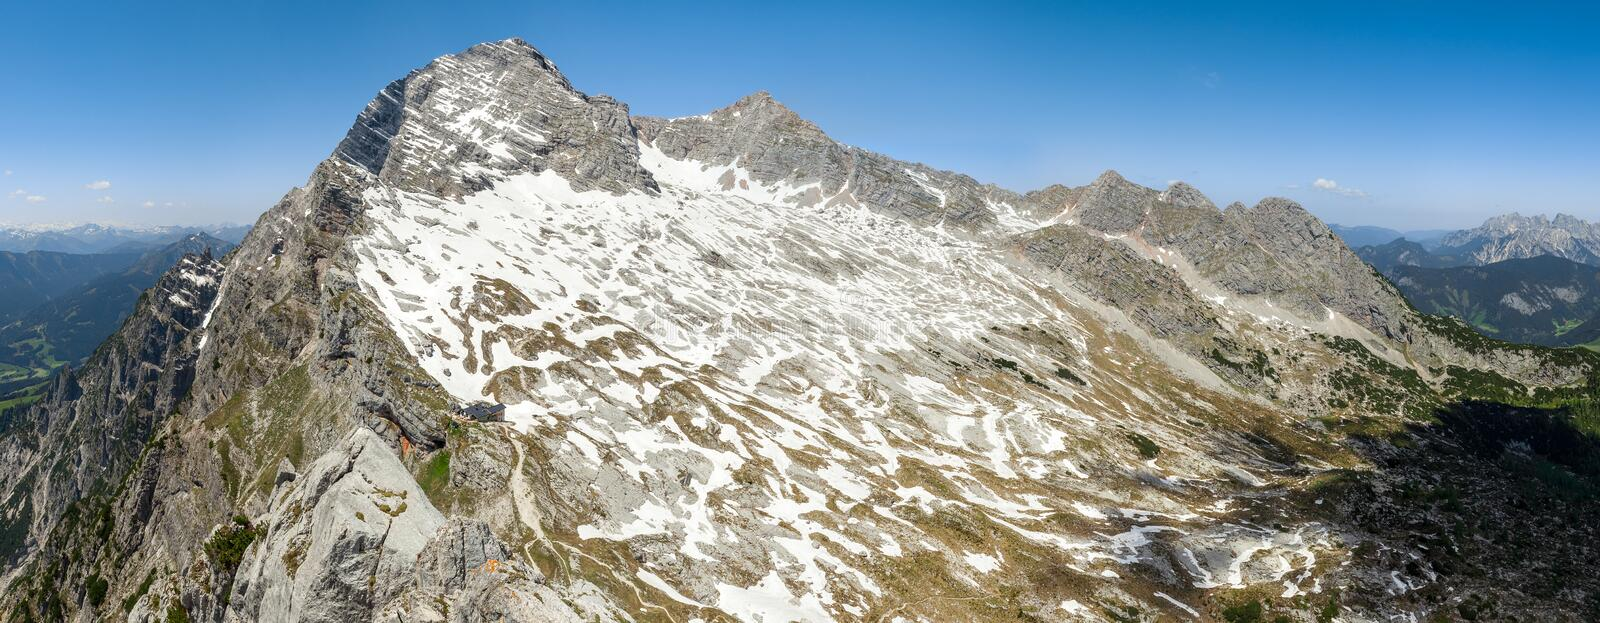 Leogang Mountains, Austria royalty free stock images